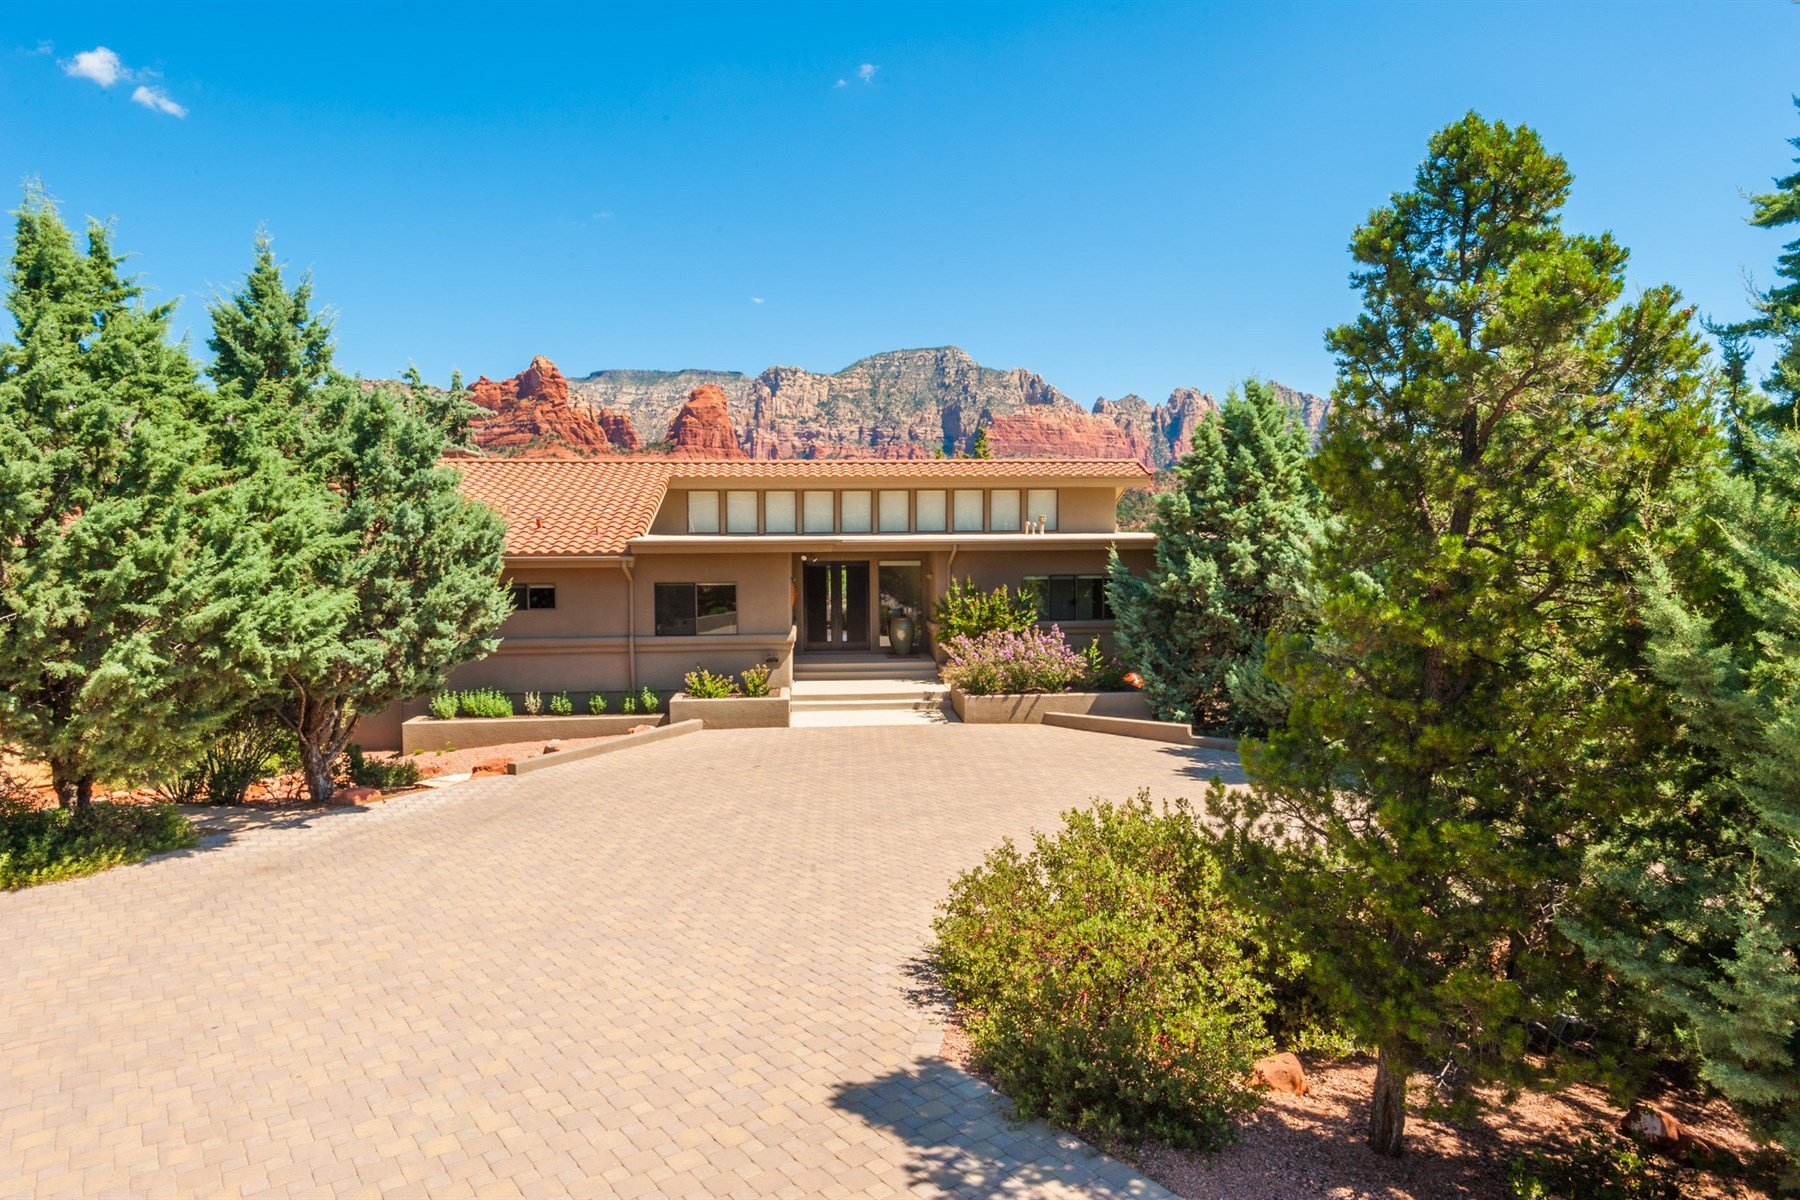 一戸建て のために 売買 アット Redesign of the home with an emphasis on revealing Sedona's most coveted views 1520 Cline Rd Sedona, アリゾナ 86336 アメリカ合衆国